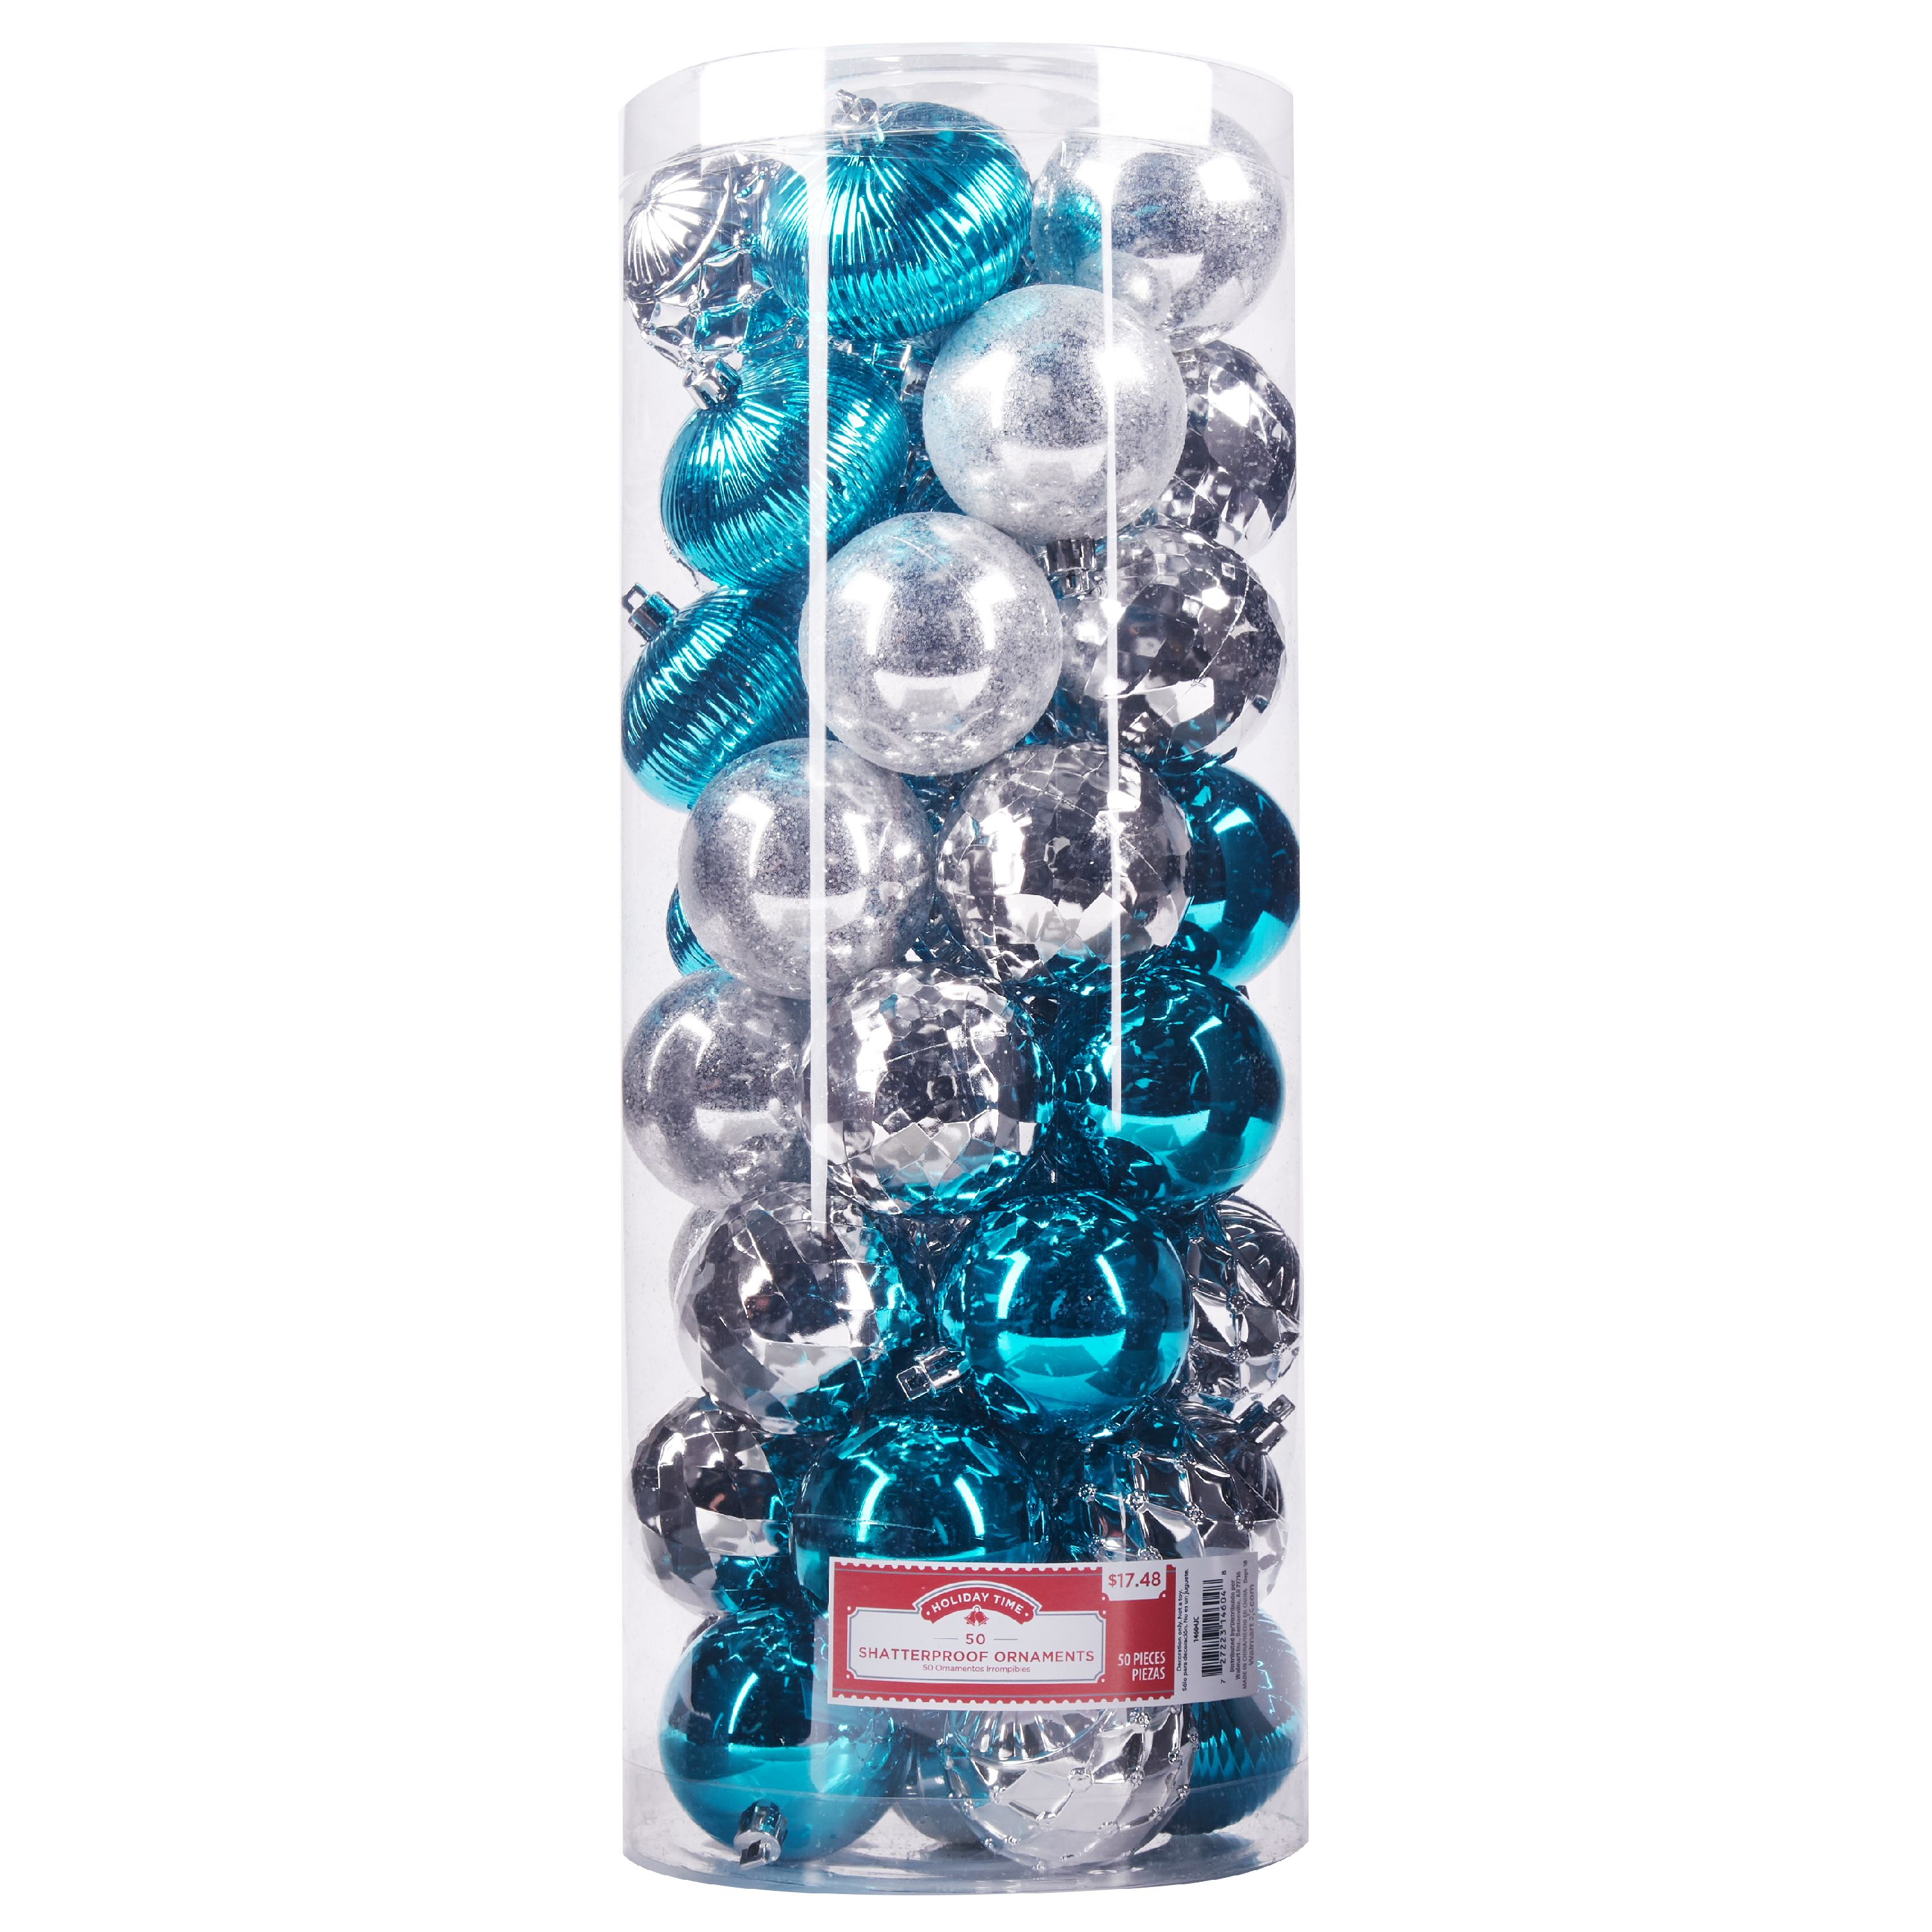 Holiday Time Shatterproof Ornaments, Silver & Teal, 50 Count